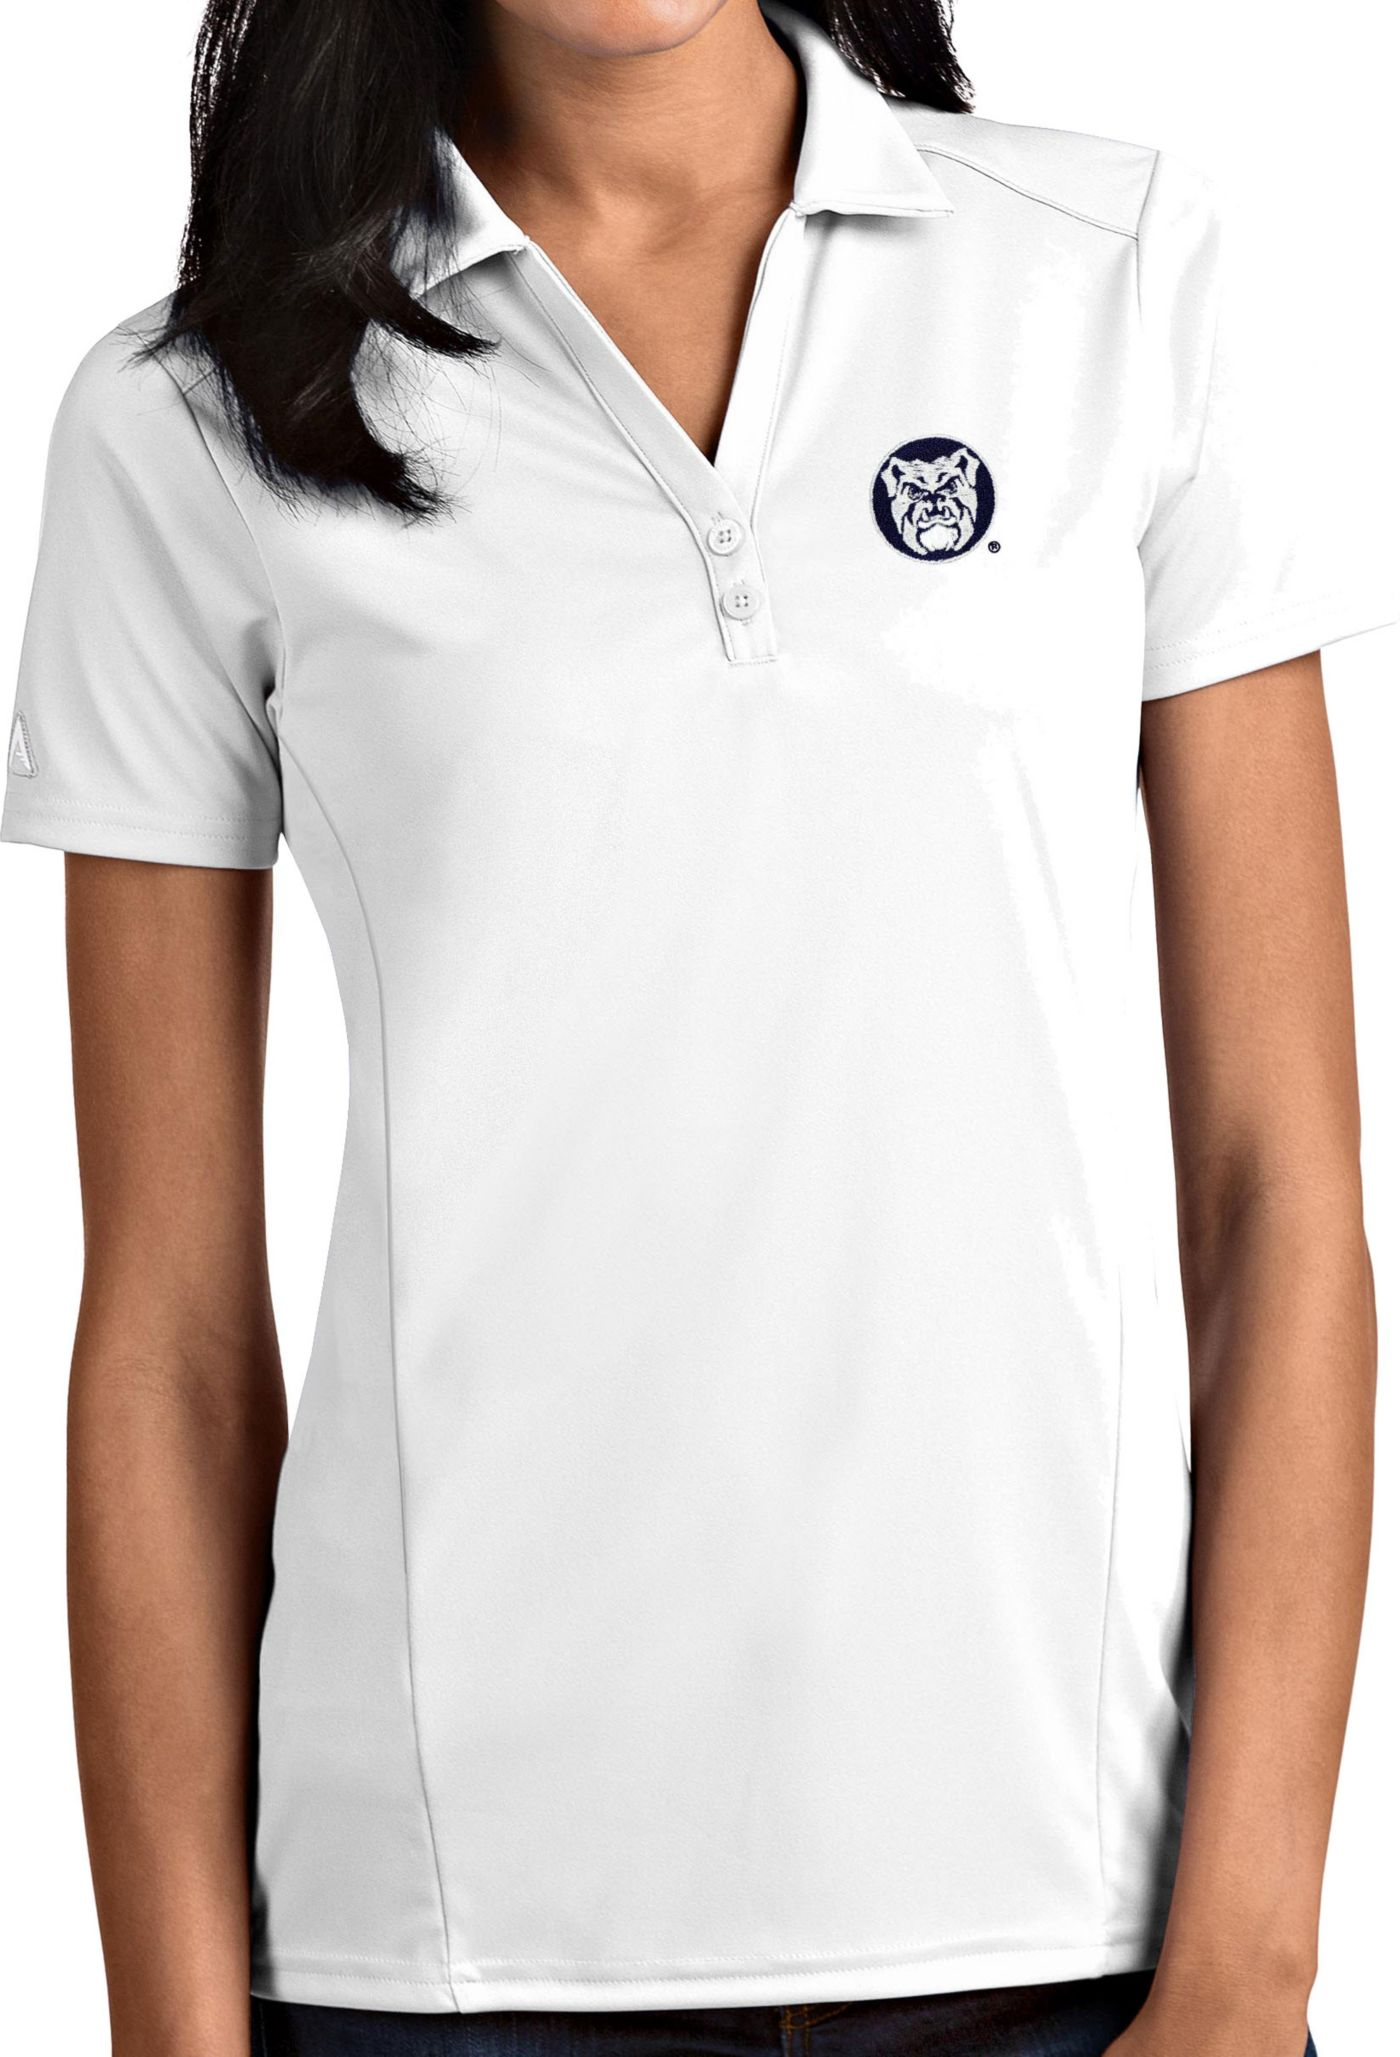 Antigua Women's Butler Bulldogs Tribute Performance White Polo